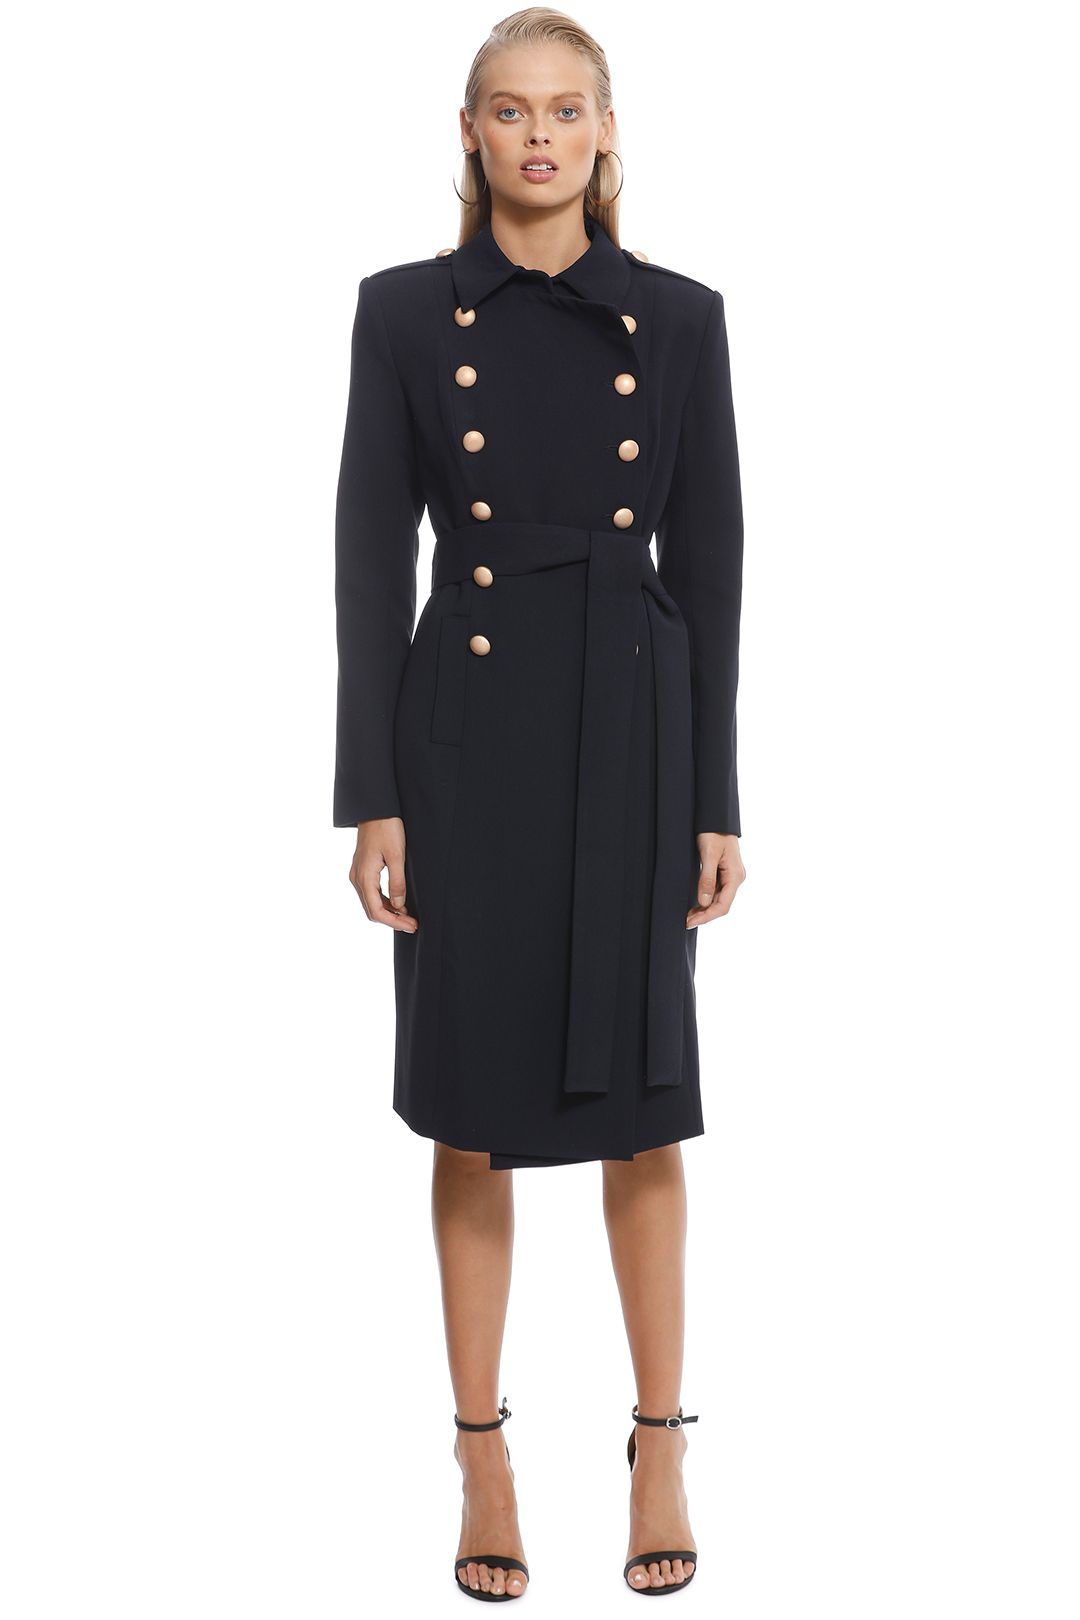 Misha Collection - Andrea Coat – Navy - Front